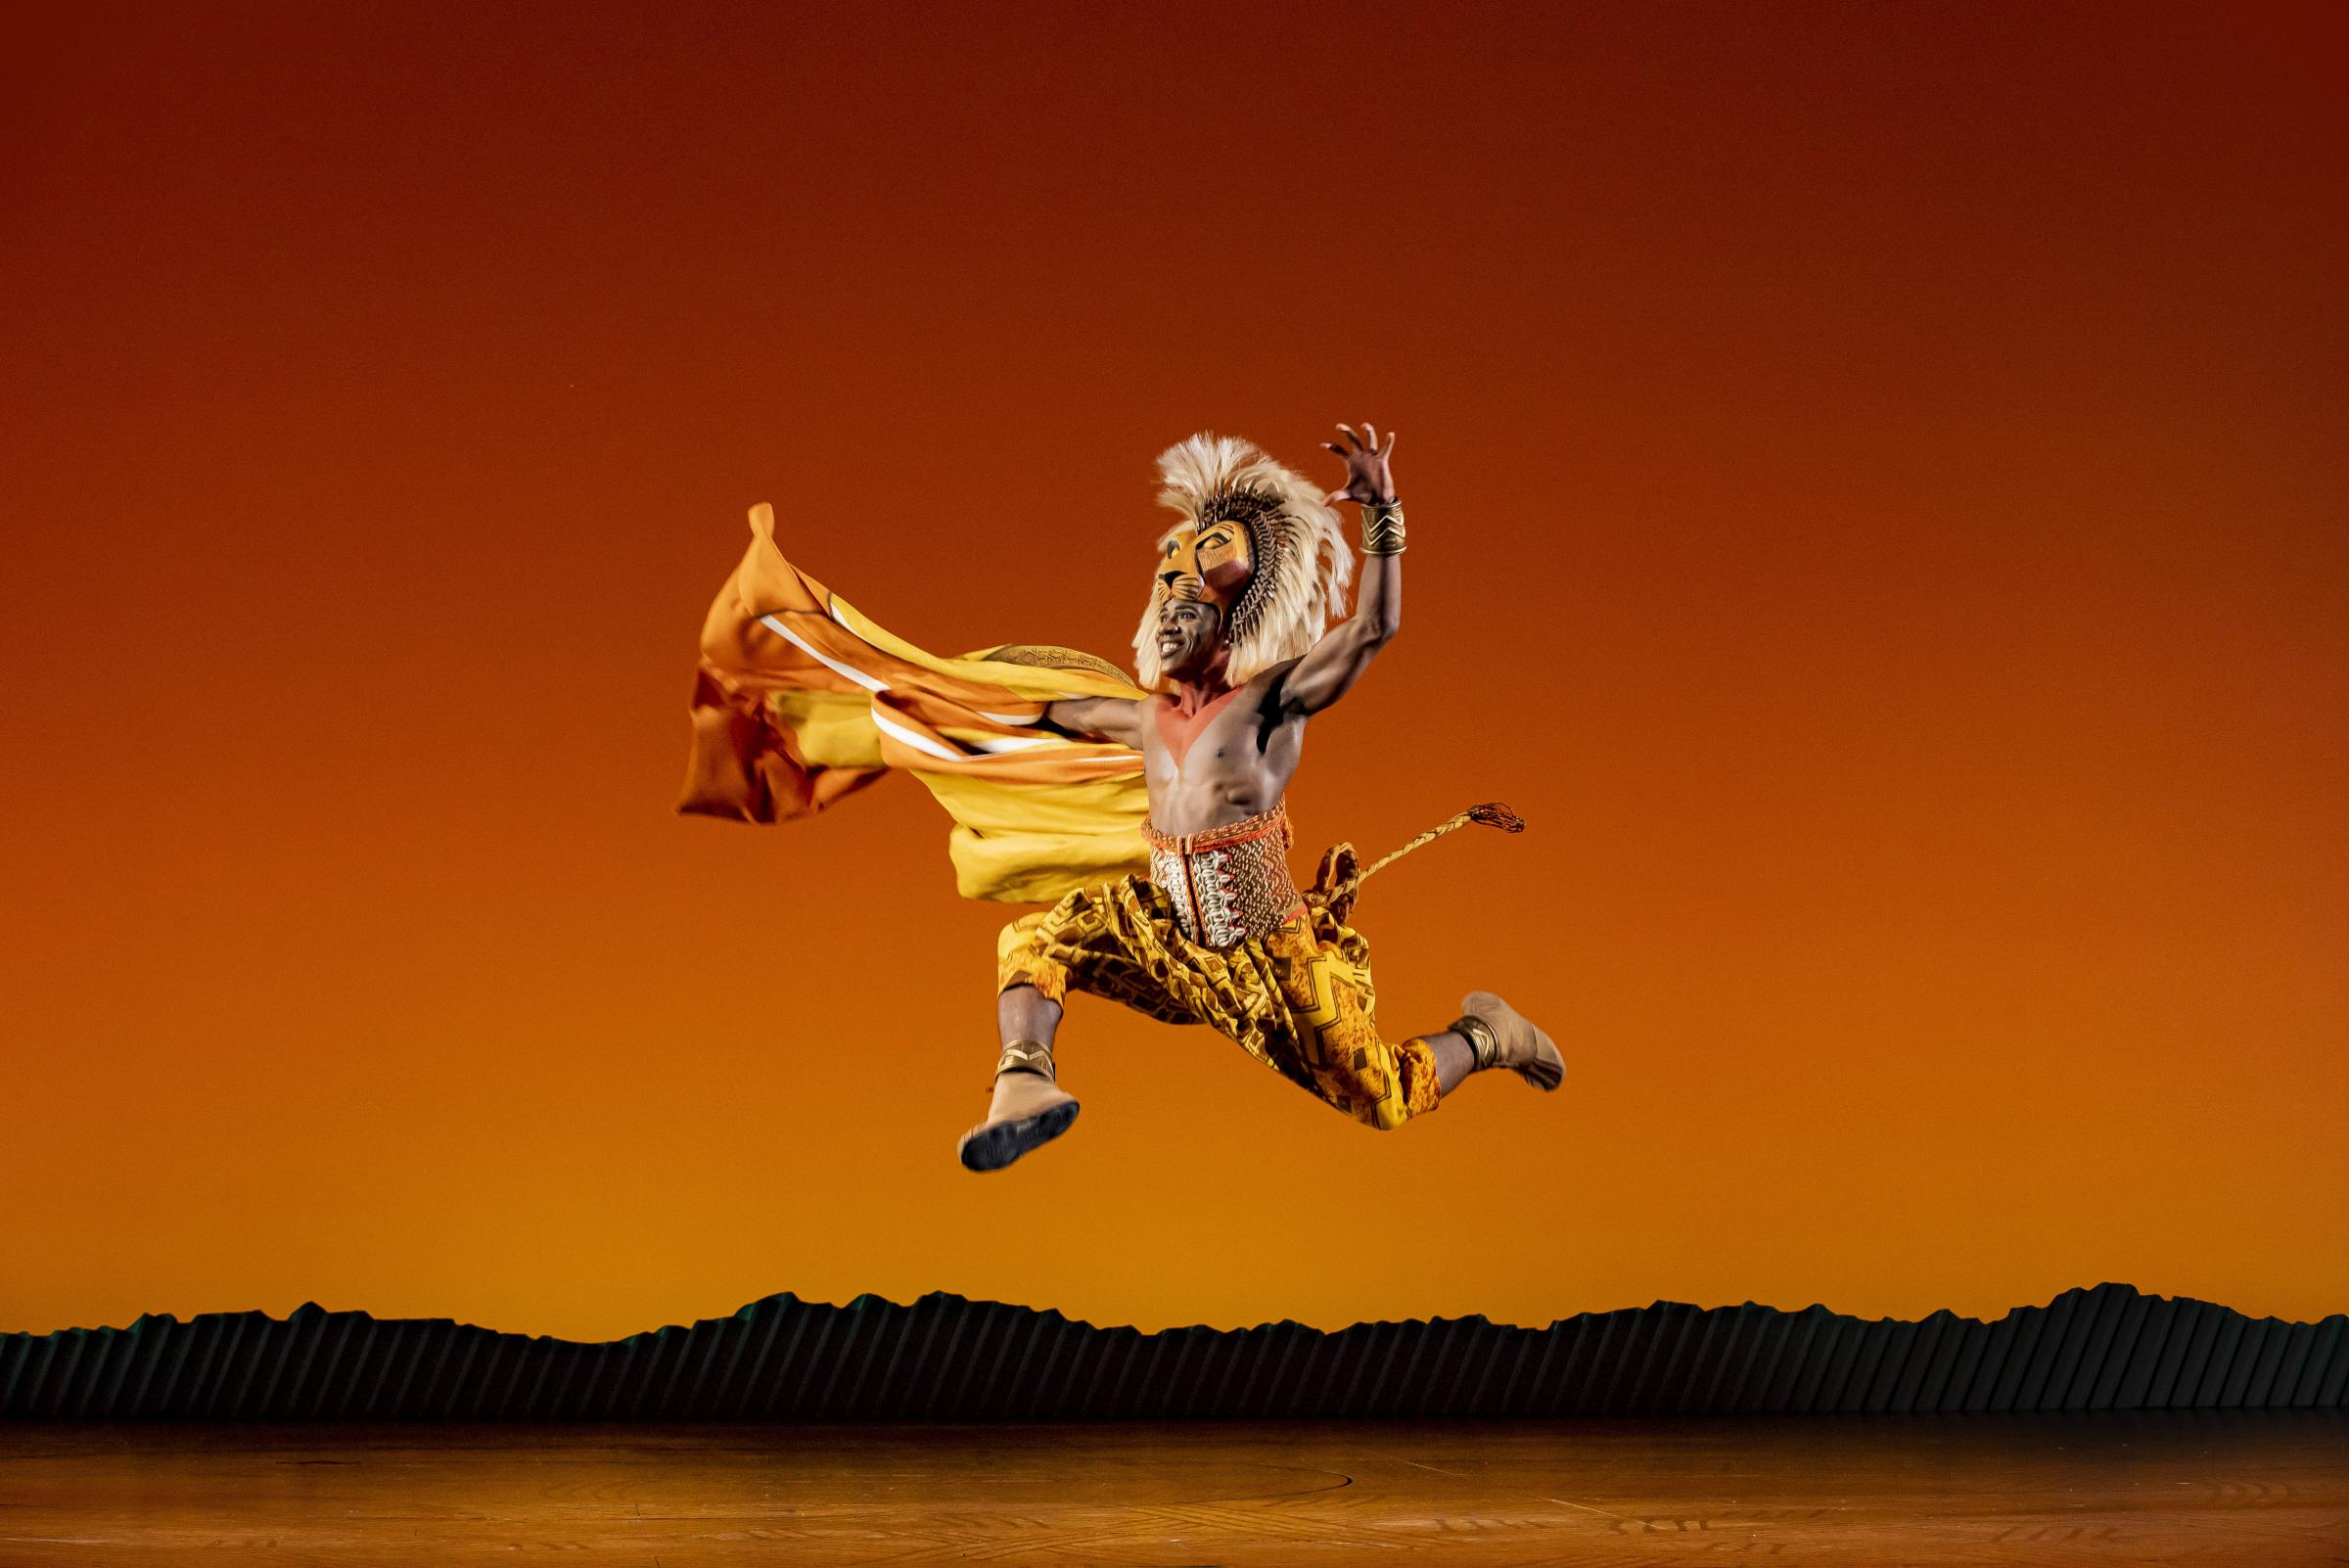 Rhythm of Africa brings magic of The Lion King to life